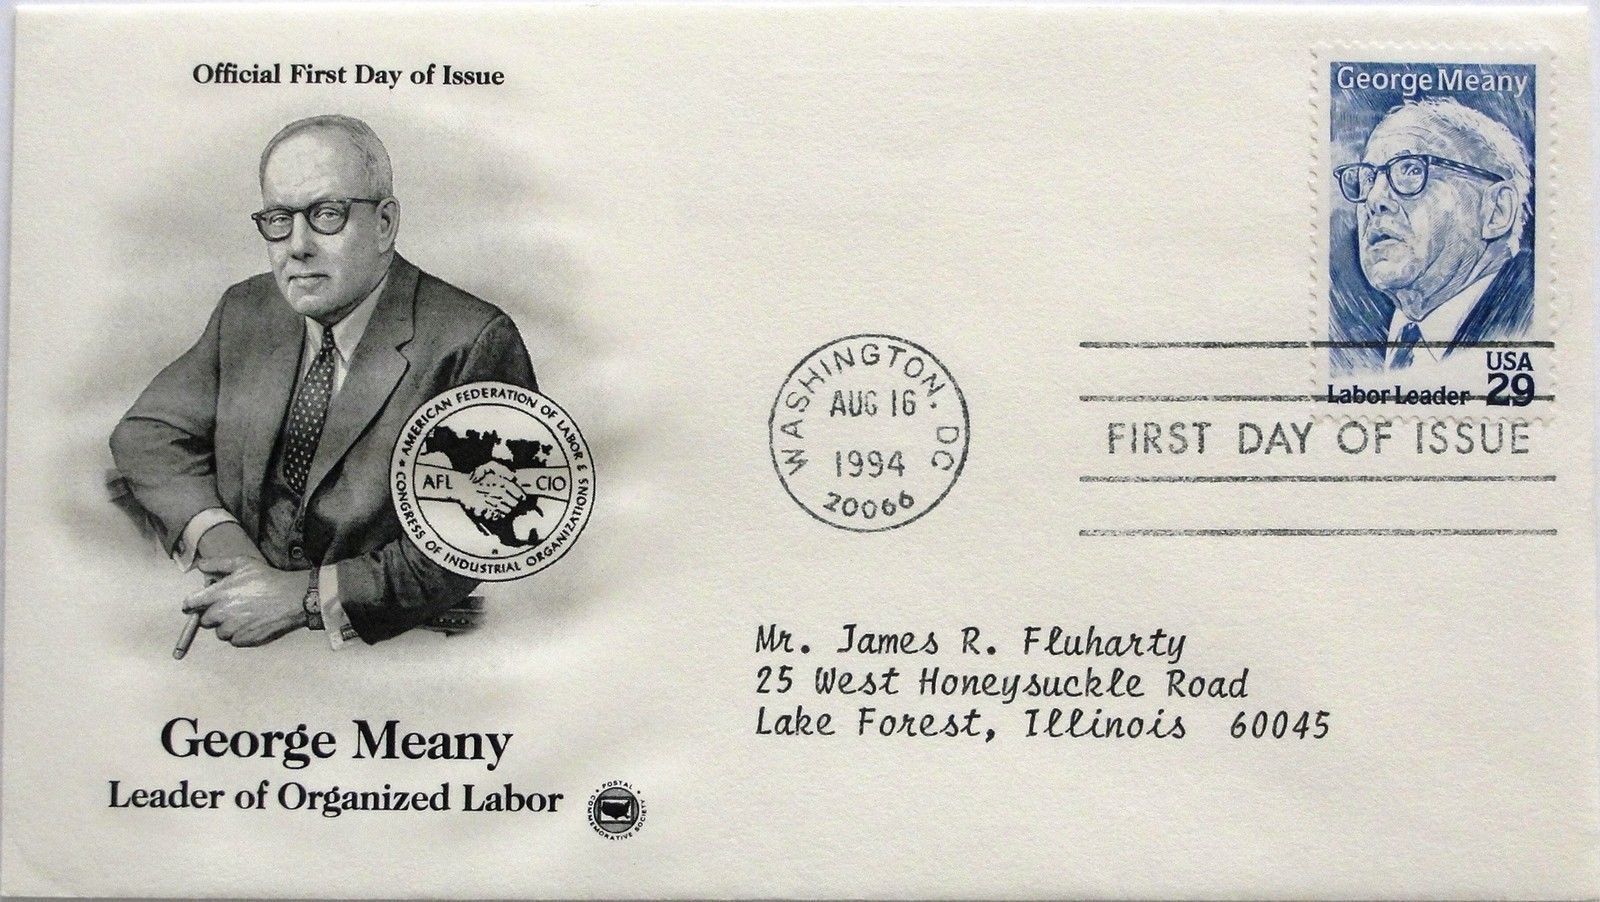 Aug. 16, 1994 First Day of Issue, PC Society Cover, George Meany #29